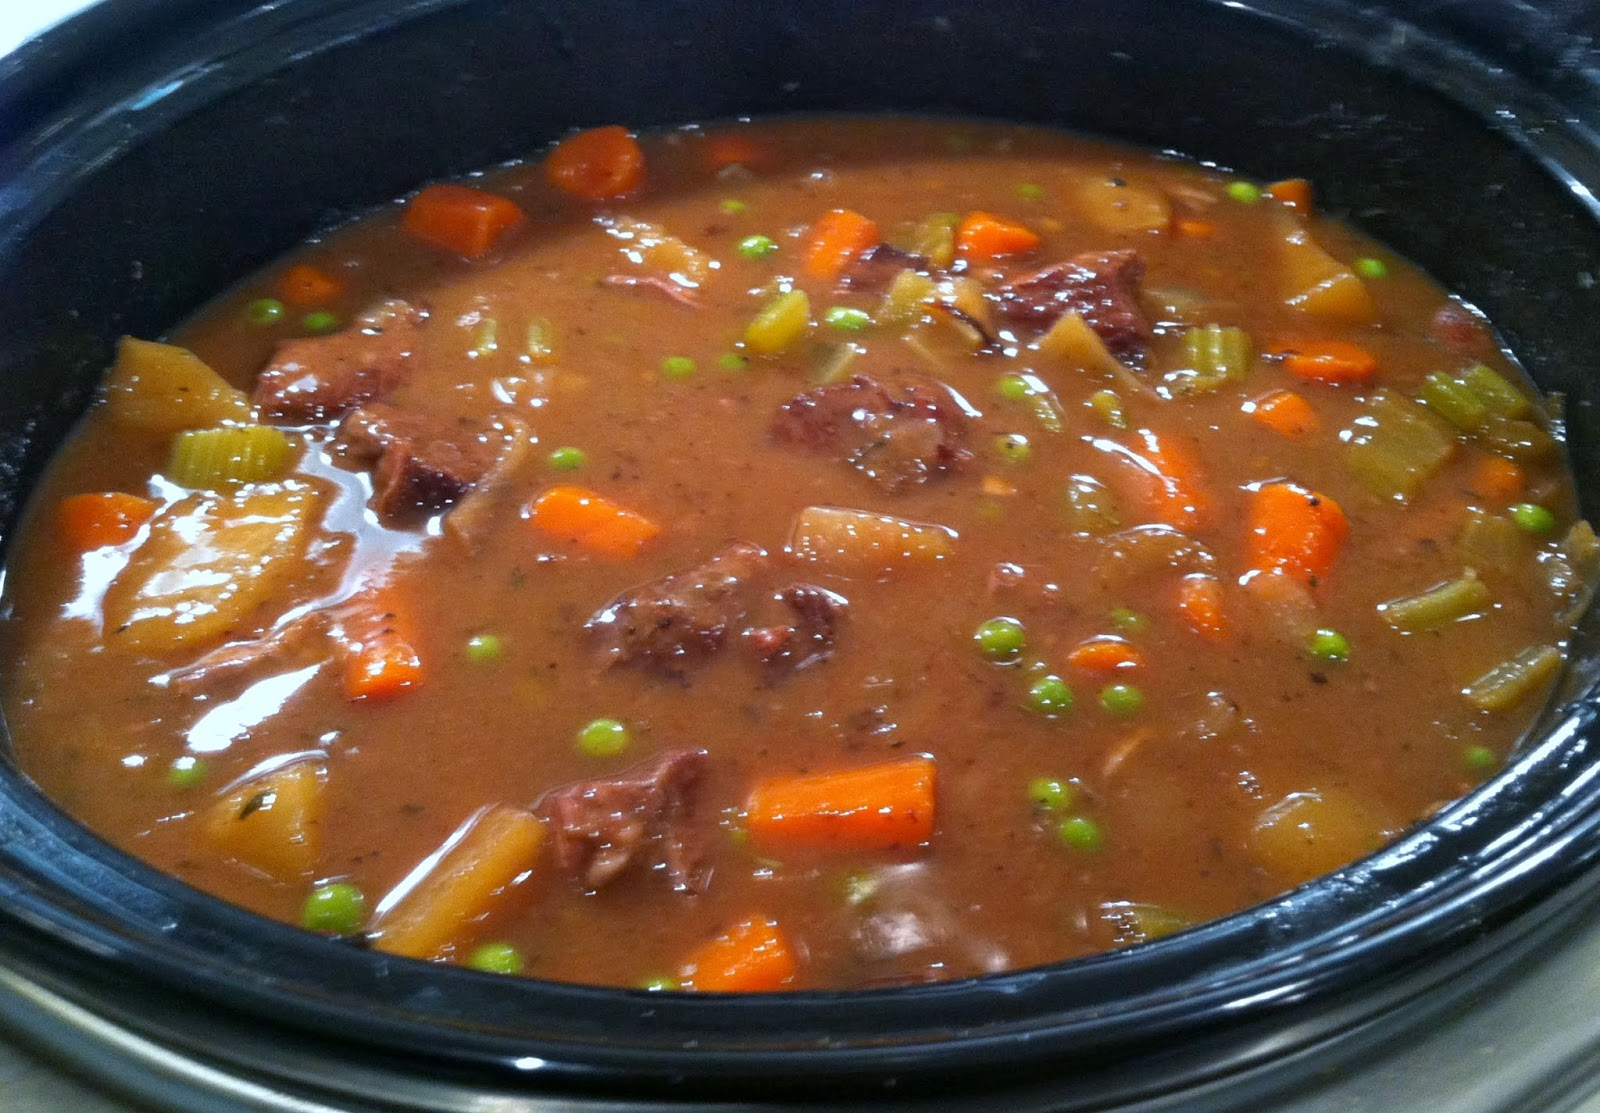 How To Make Slow Cooker Vegetable Beef Soup : Glorious Soup Recipes